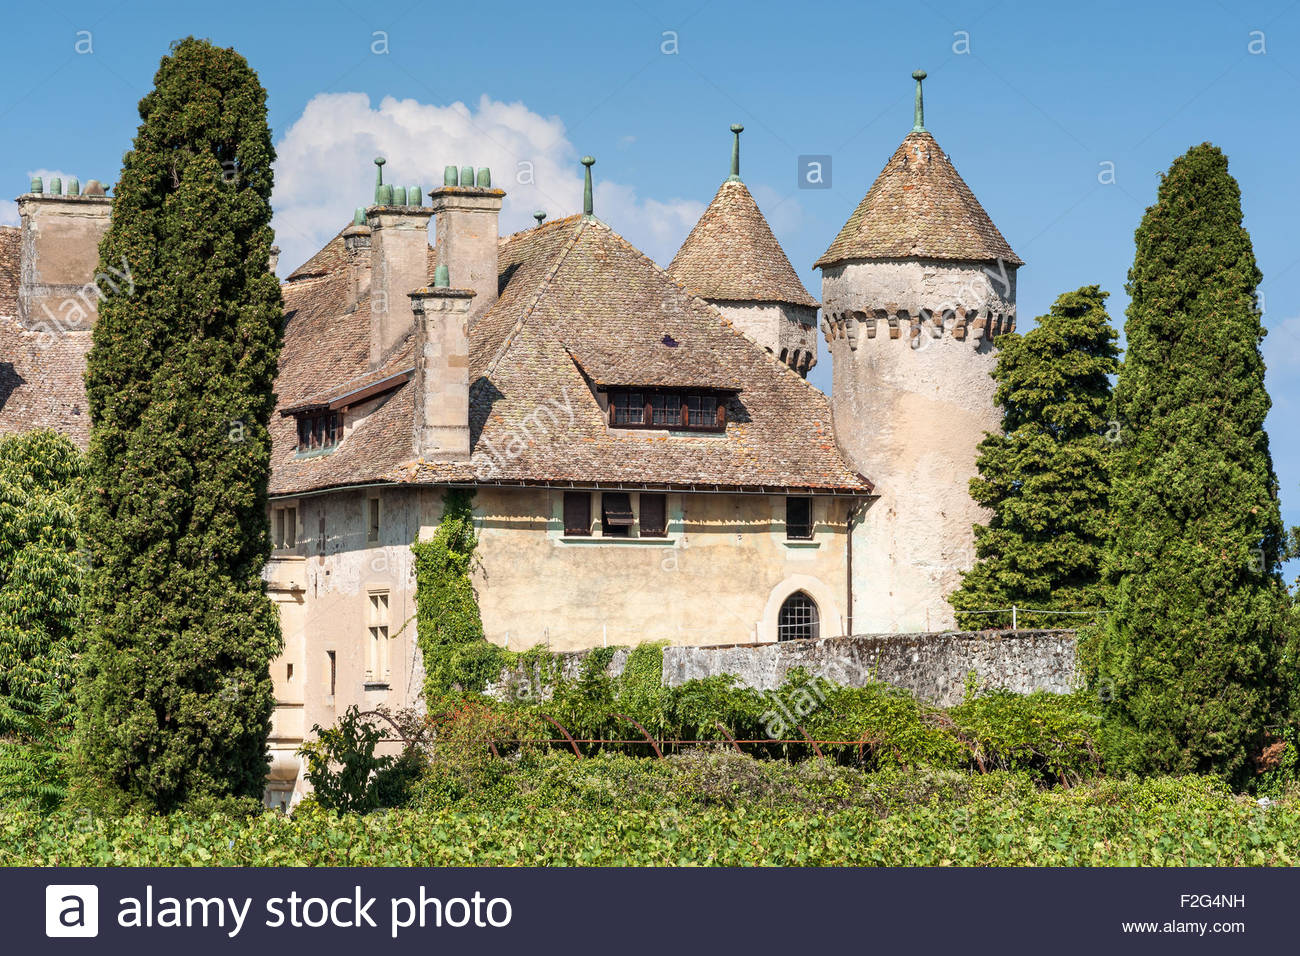 Ripaille castle and vineyard in Thonon-les-Bains (France) Stock Photo